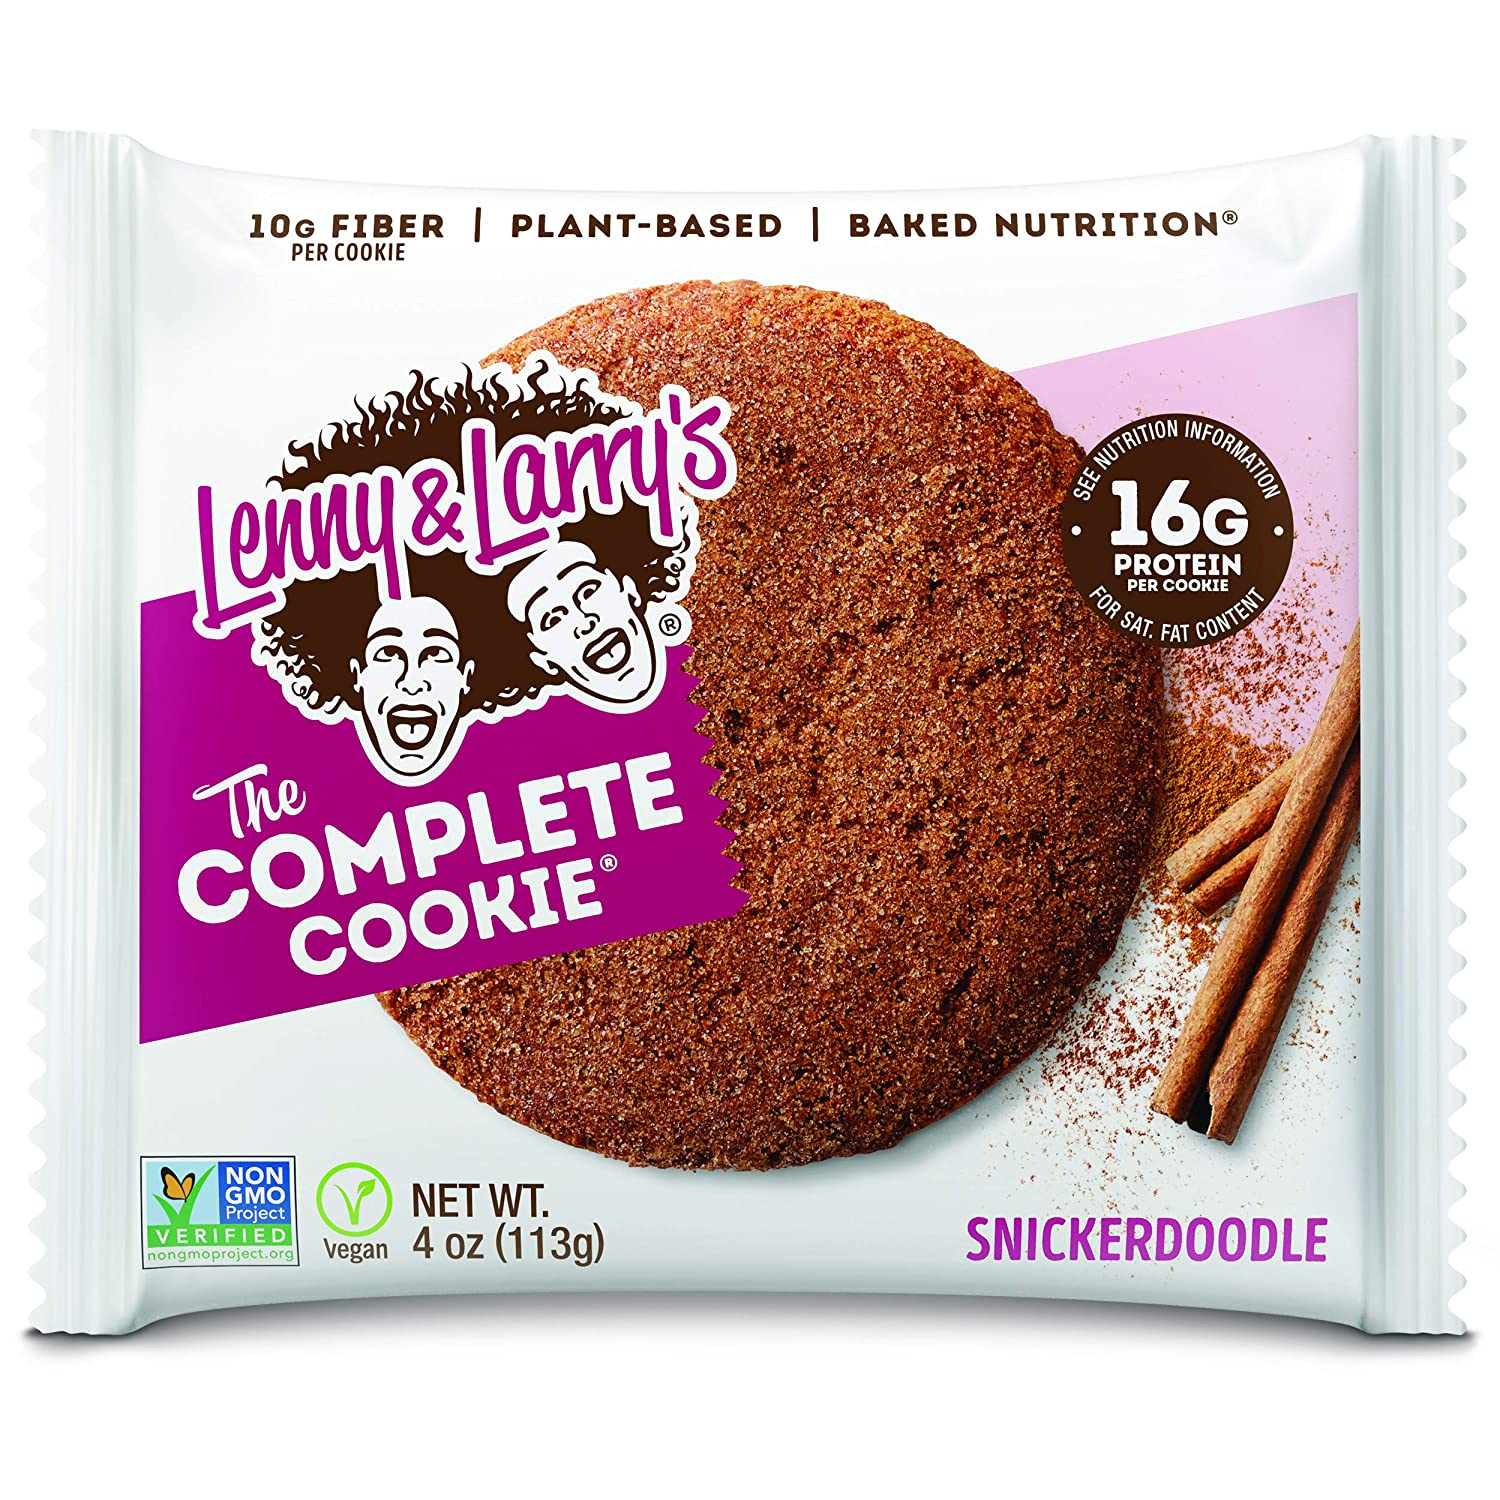 Lenny & Larry's The Complete Cookie, Snickerdoodle, Soft Baked, 16g Plant Protein, Vegan, Non-GMO, 4 Ounce Cookie (Pack of 12)